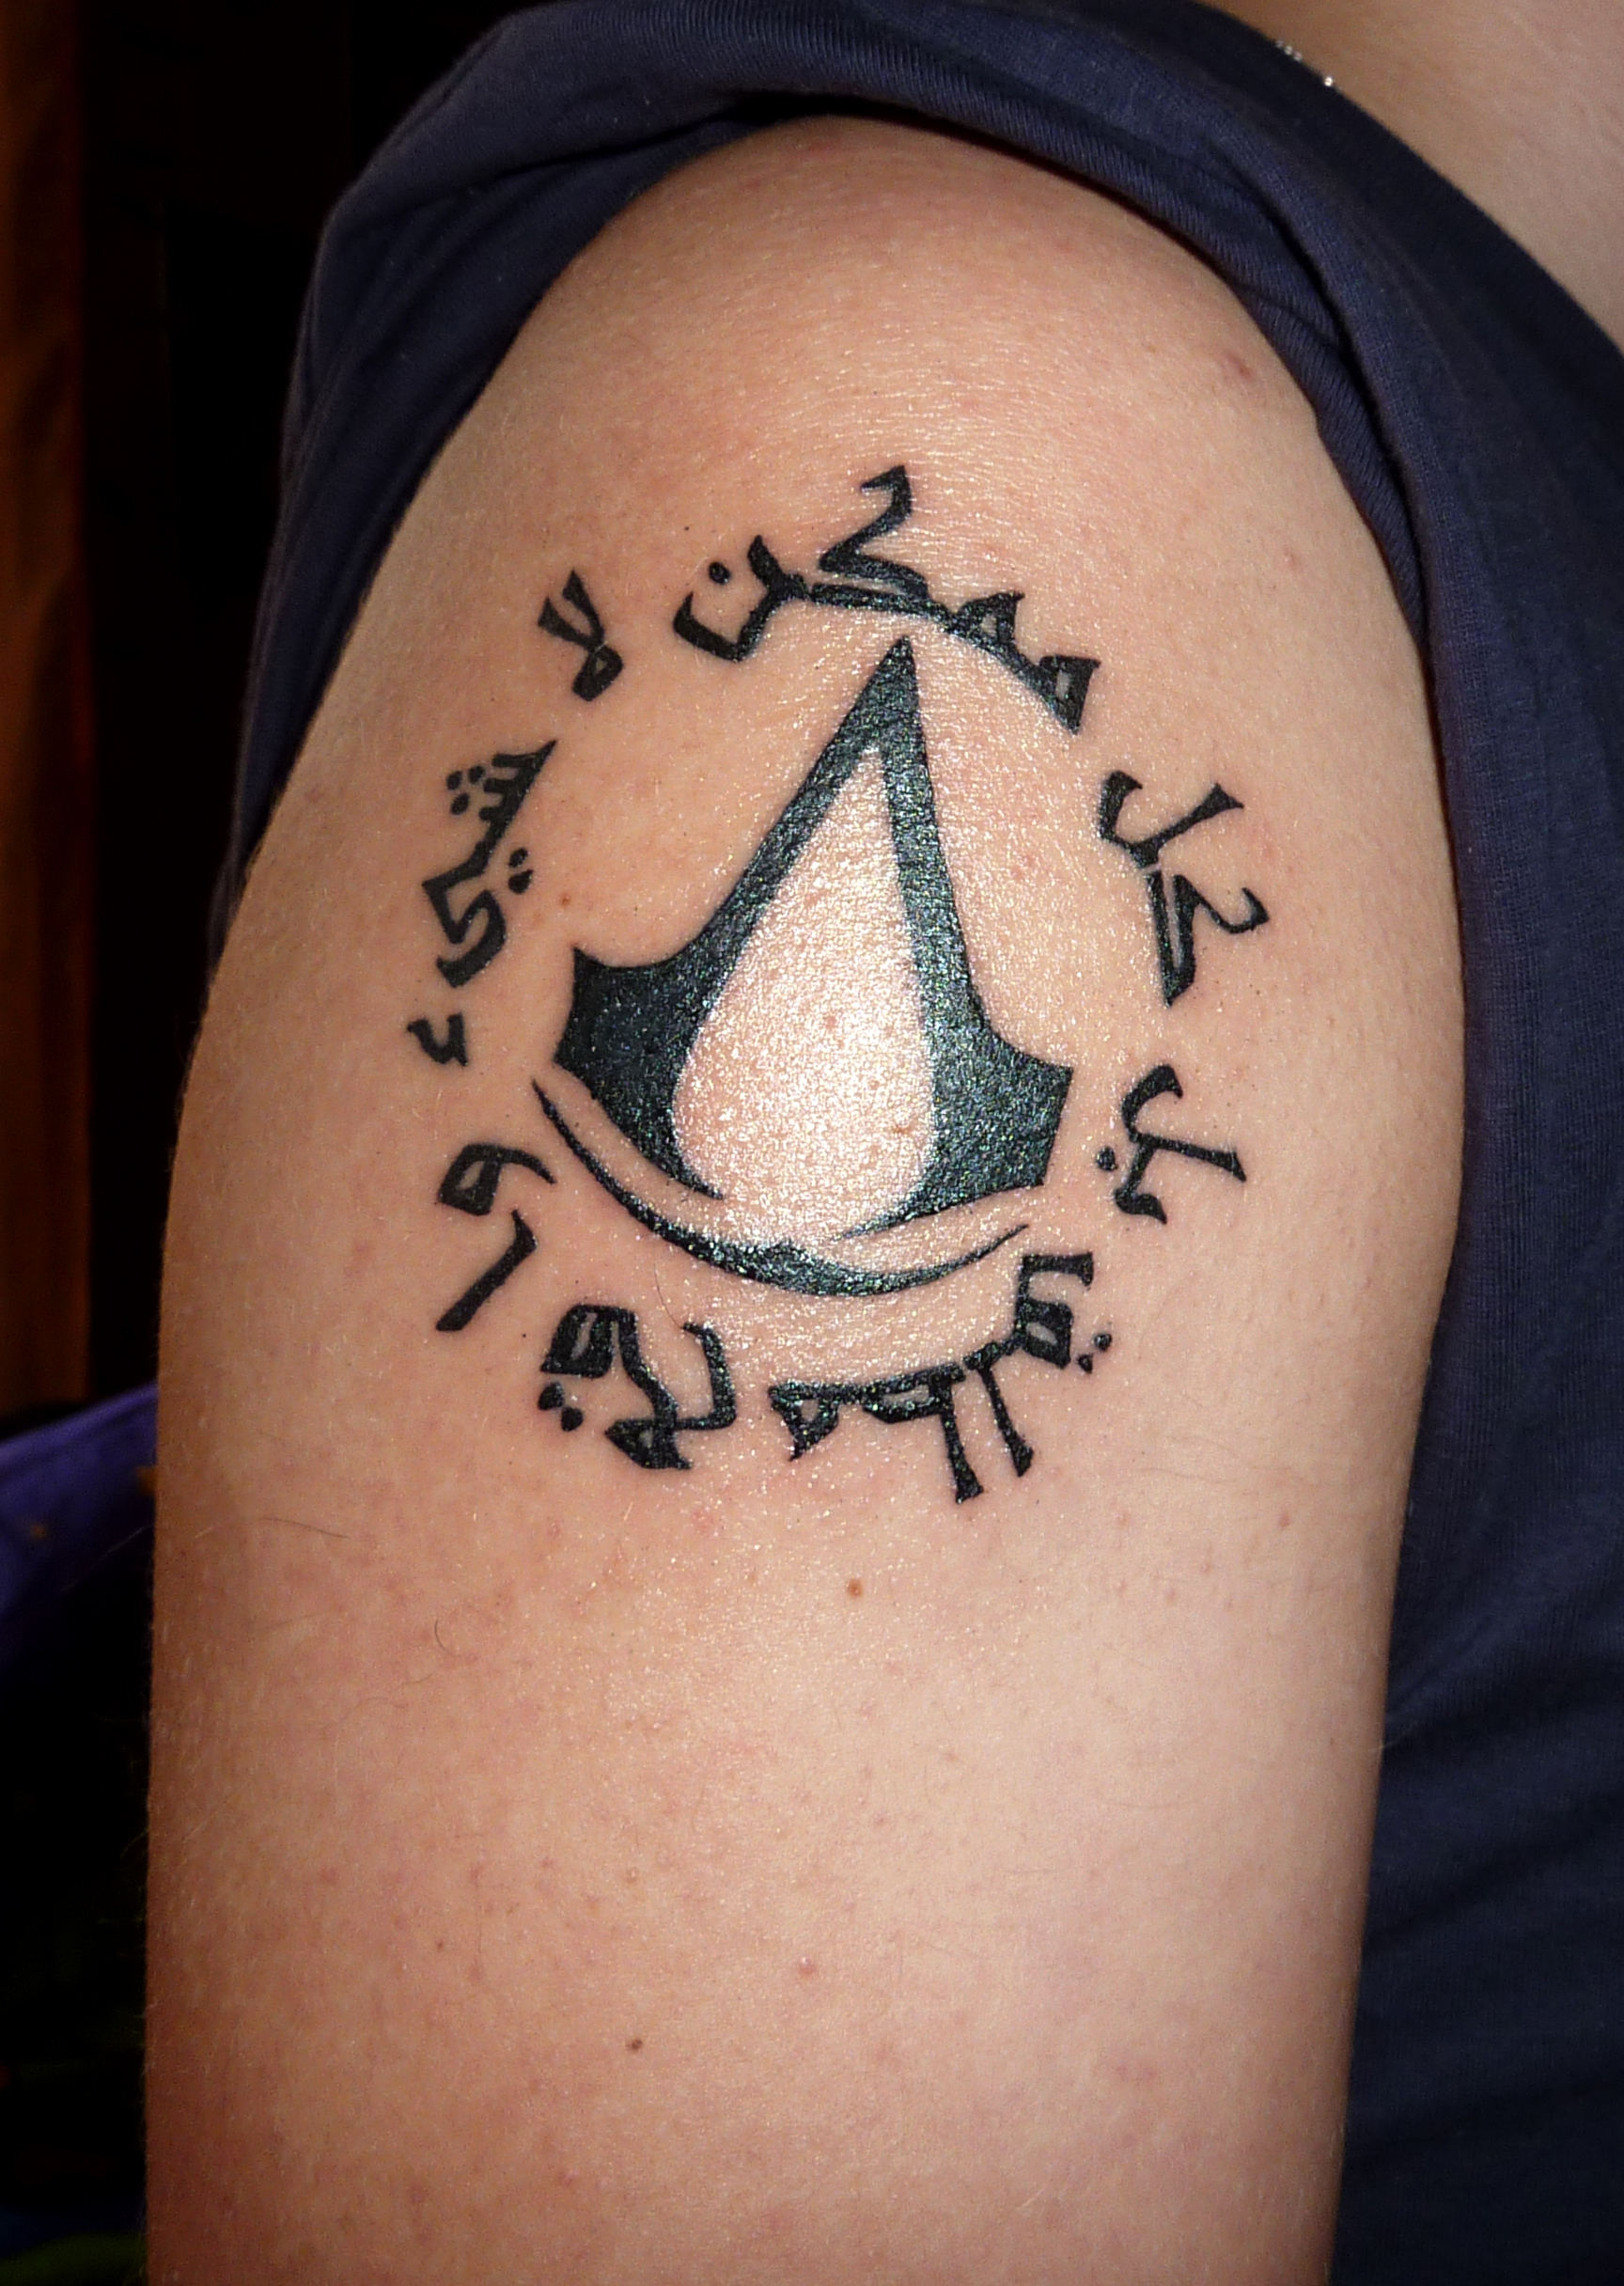 Assassin S Creed Tattoo By Zradus On Deviantart